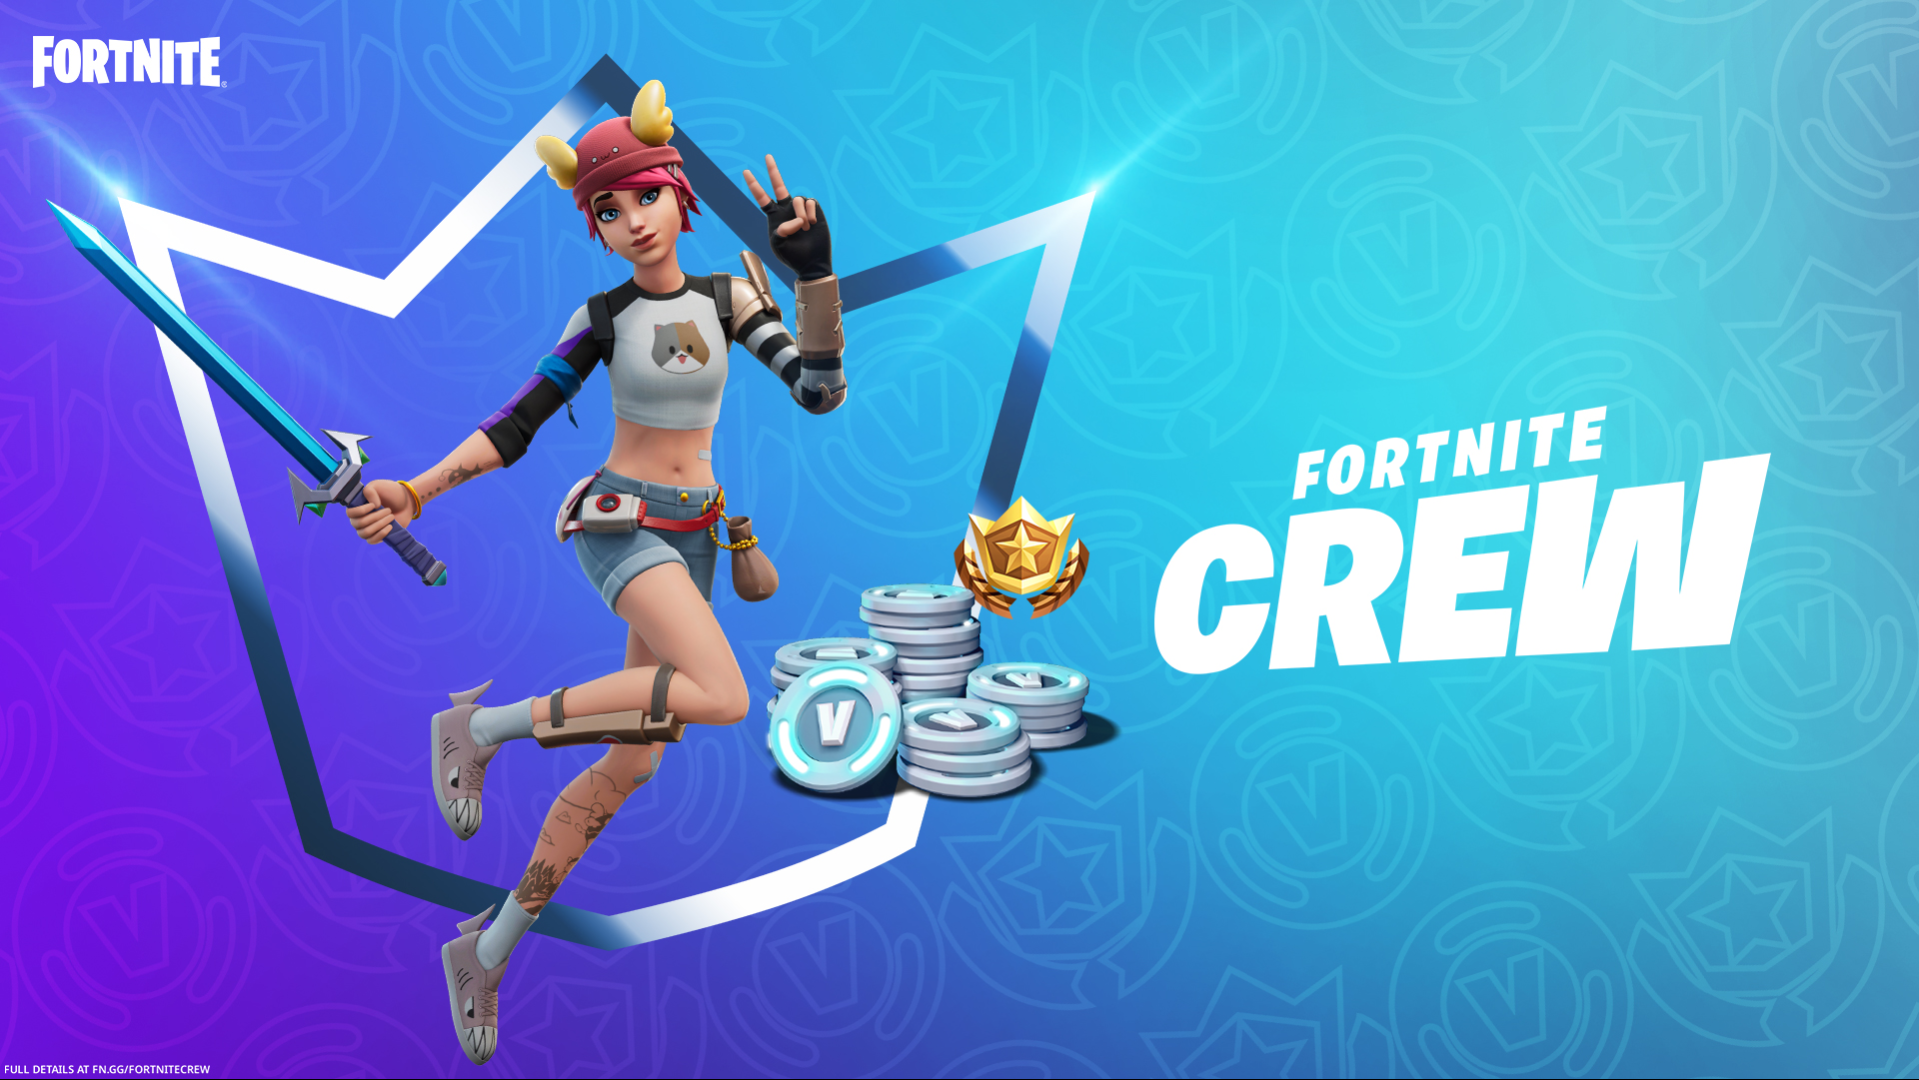 The August 2021 Fortnite Crew Pack Has Been Revealed, With Summer Skye As The New Outfit